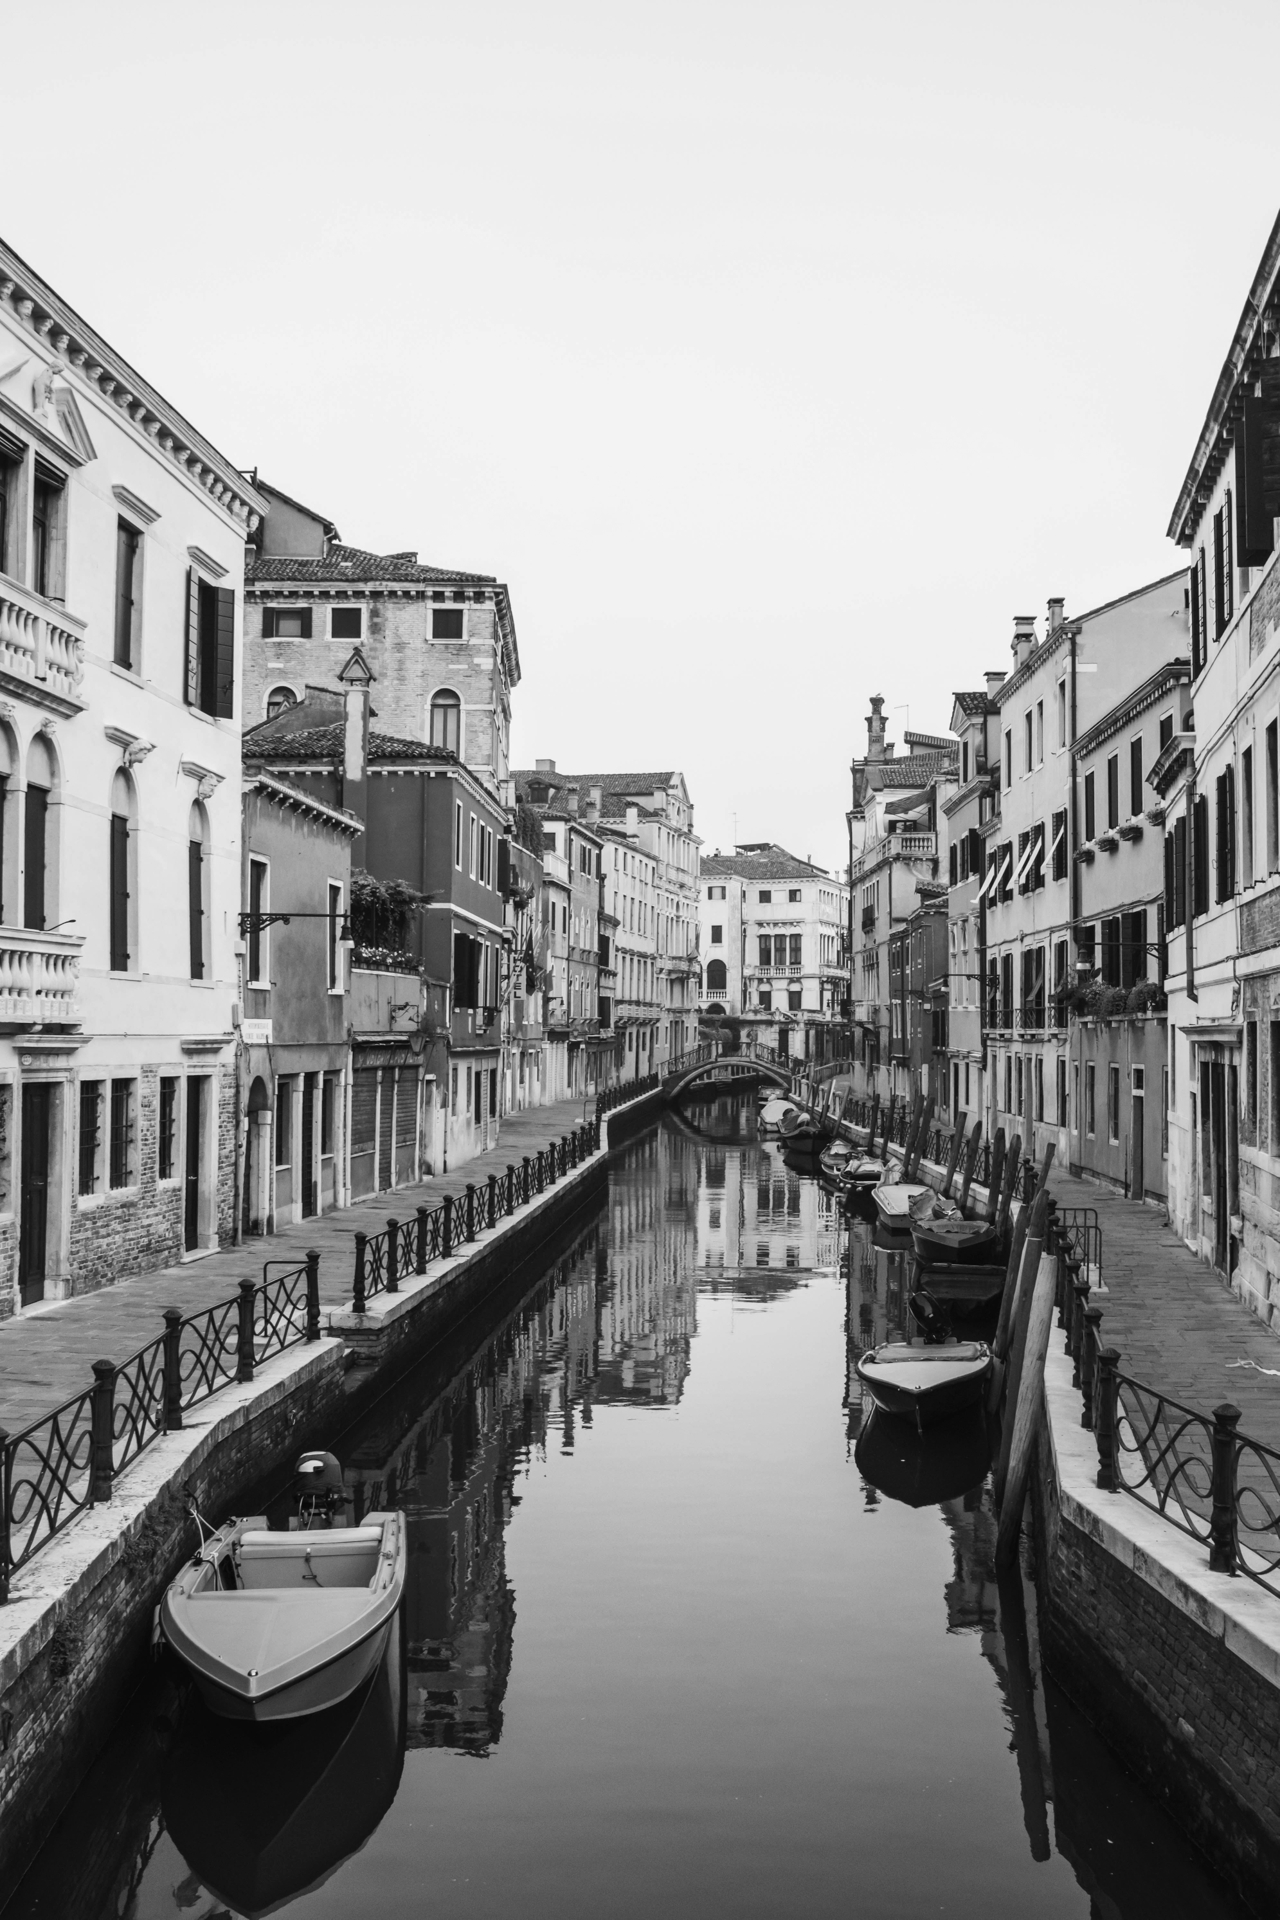 A canal in Venice, seen from a bridge